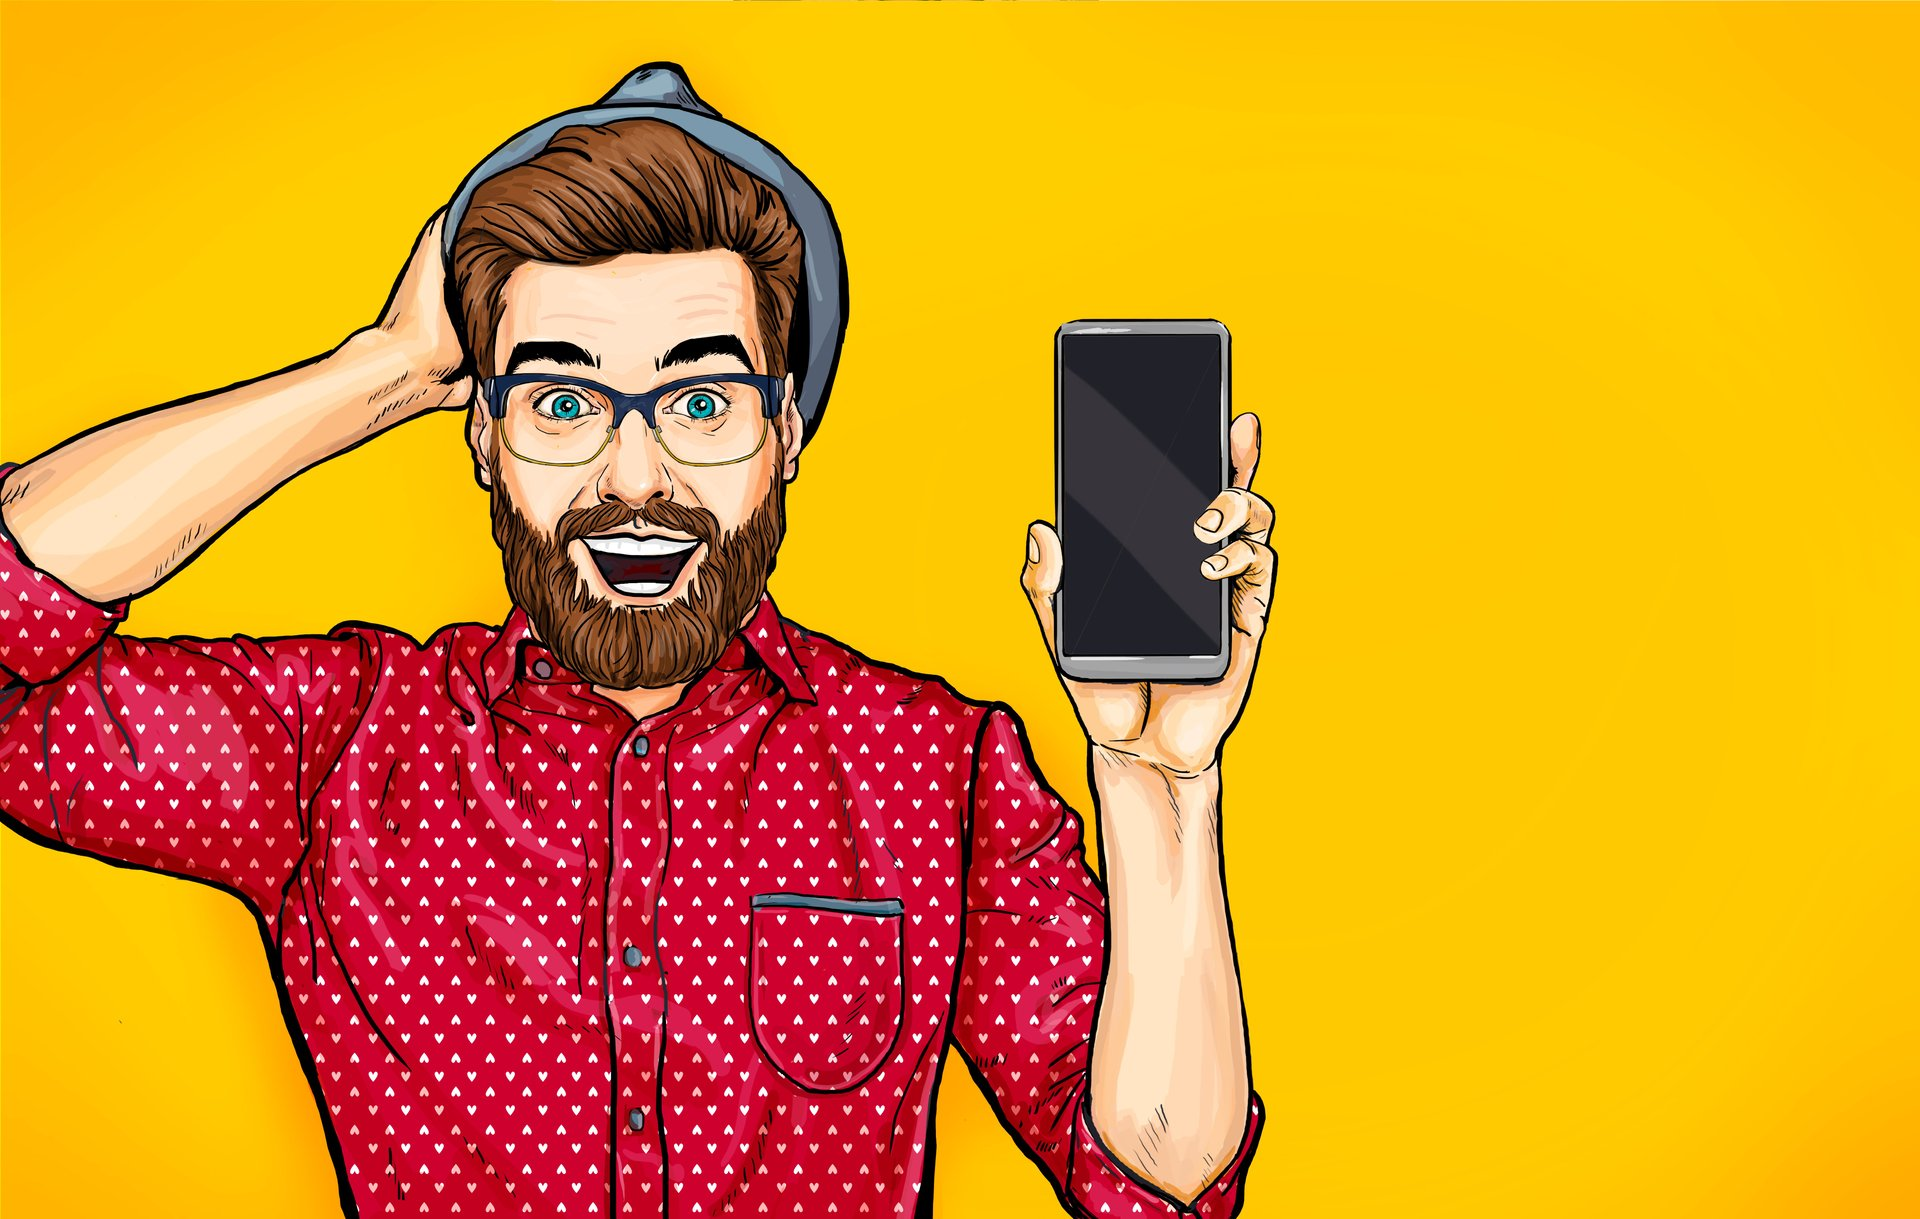 Hipster with cellphone graphic